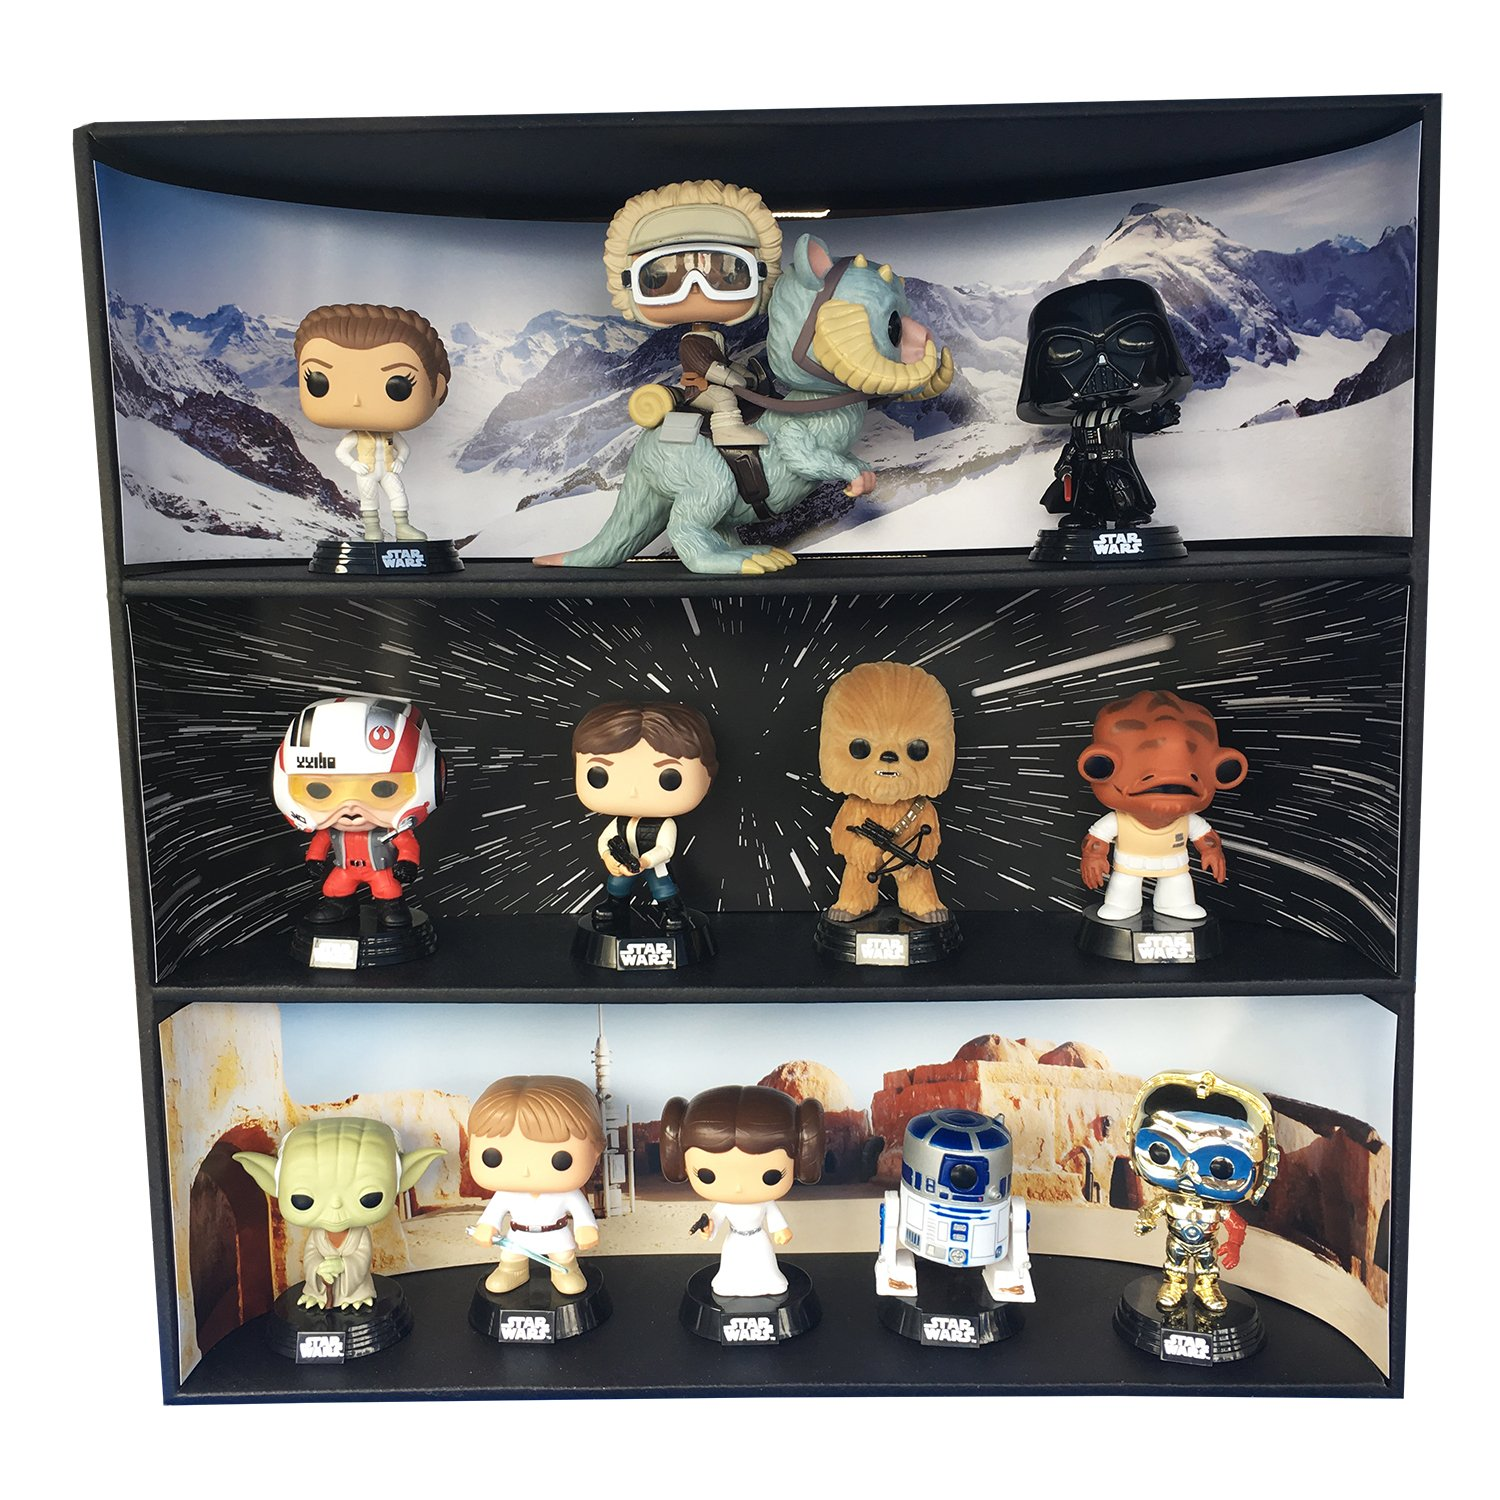 1 Display Geek Stackable Toy Shelf for 4 in. Vinyl Collectibles with 3 Backdrop Inserts, Black Corrugated Cardboard by Display Geek, Inc. (Image #2)